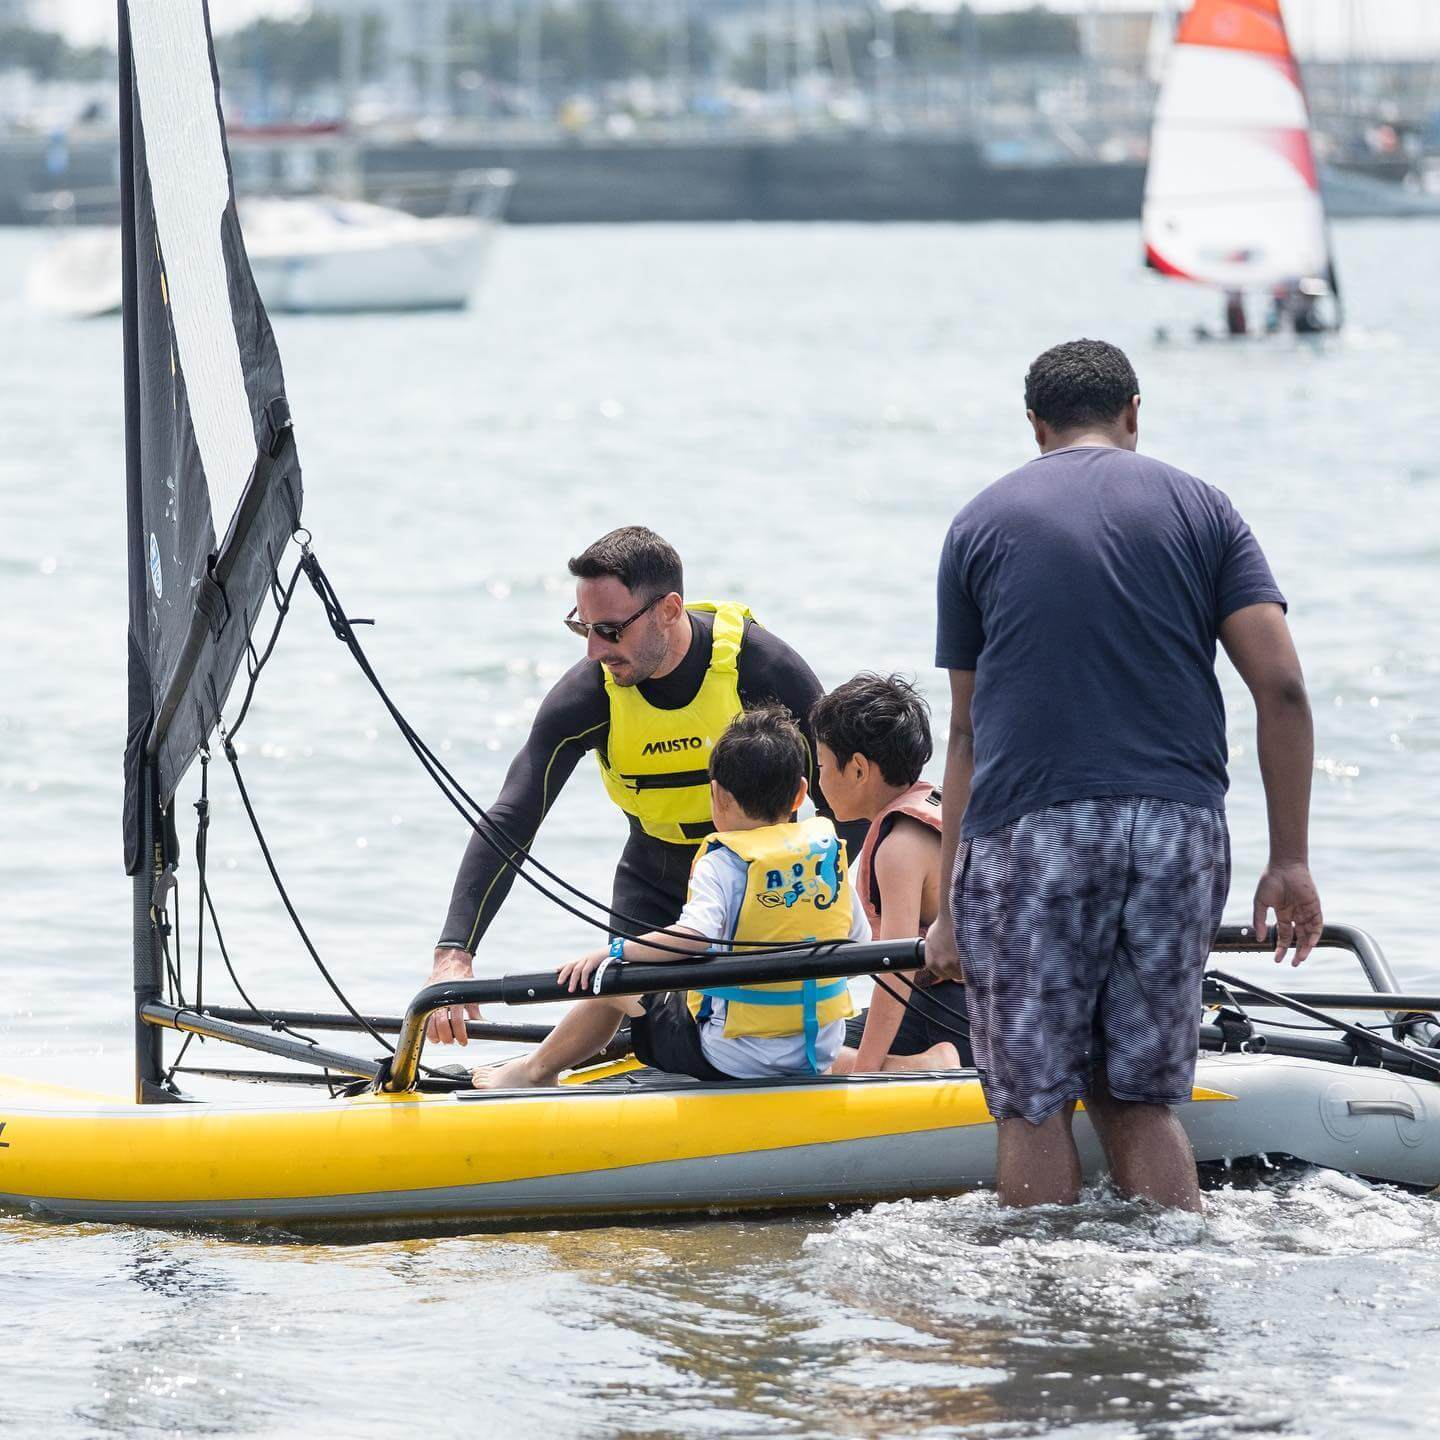 Sailing activity organized by SEGO